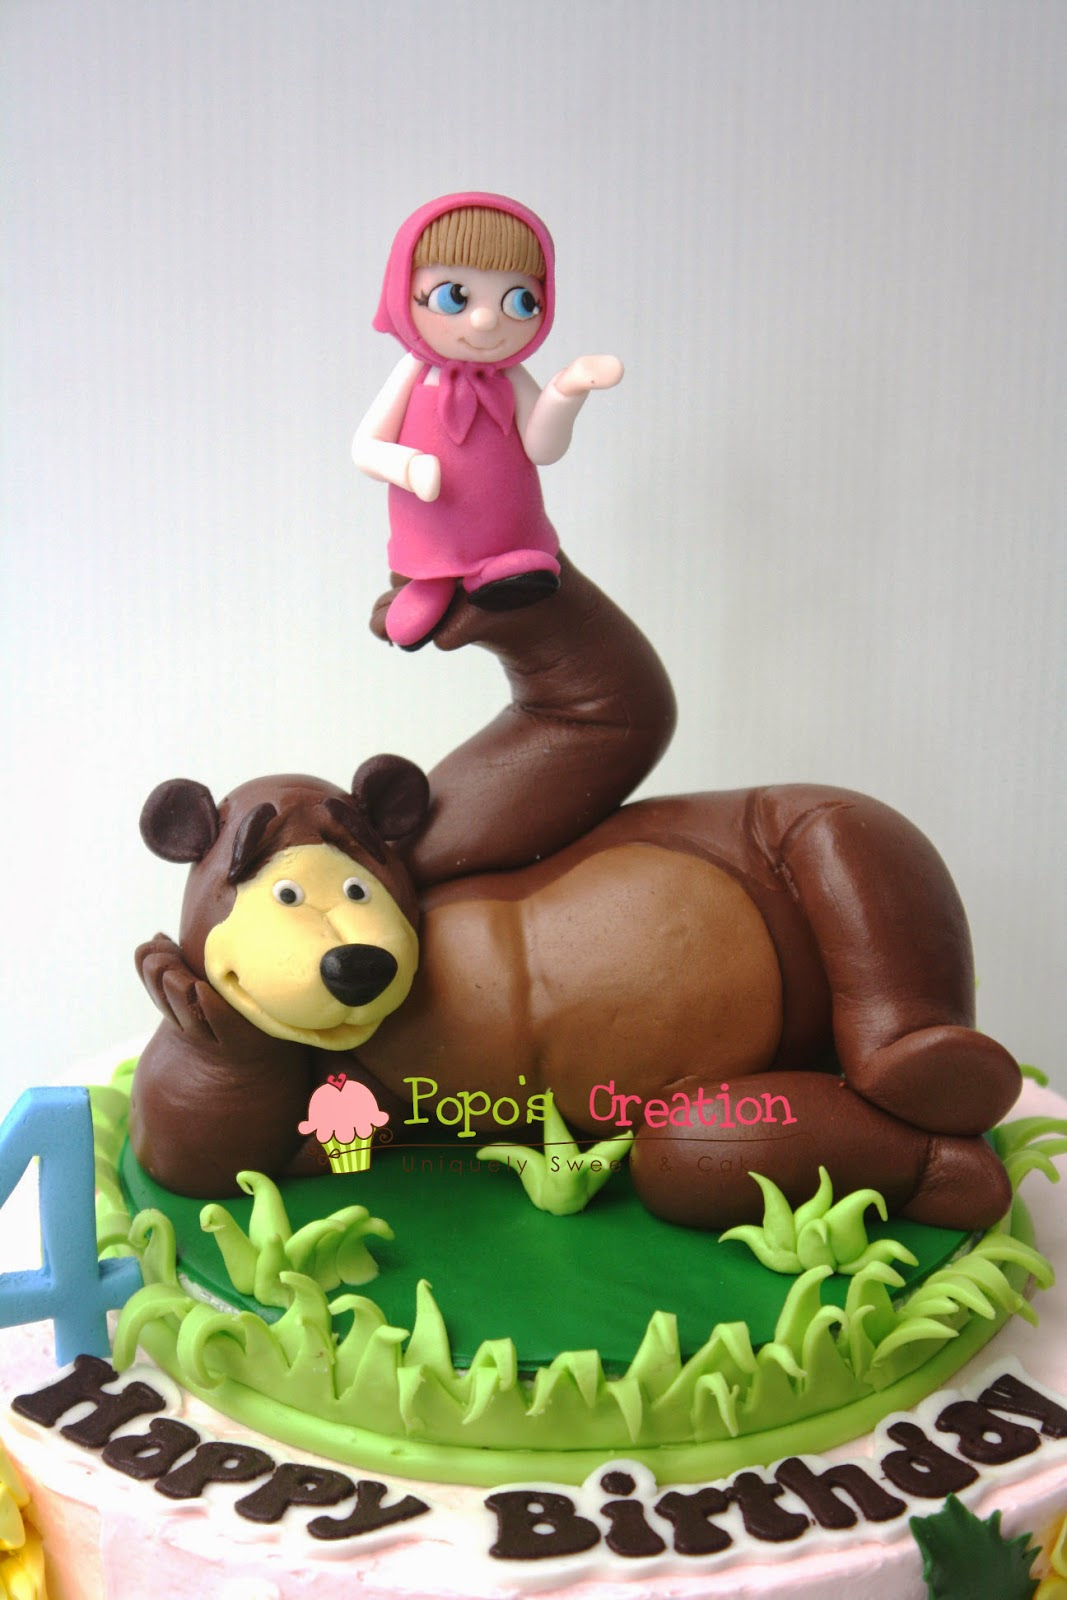 Popos Creation Masha and the Bear Cake